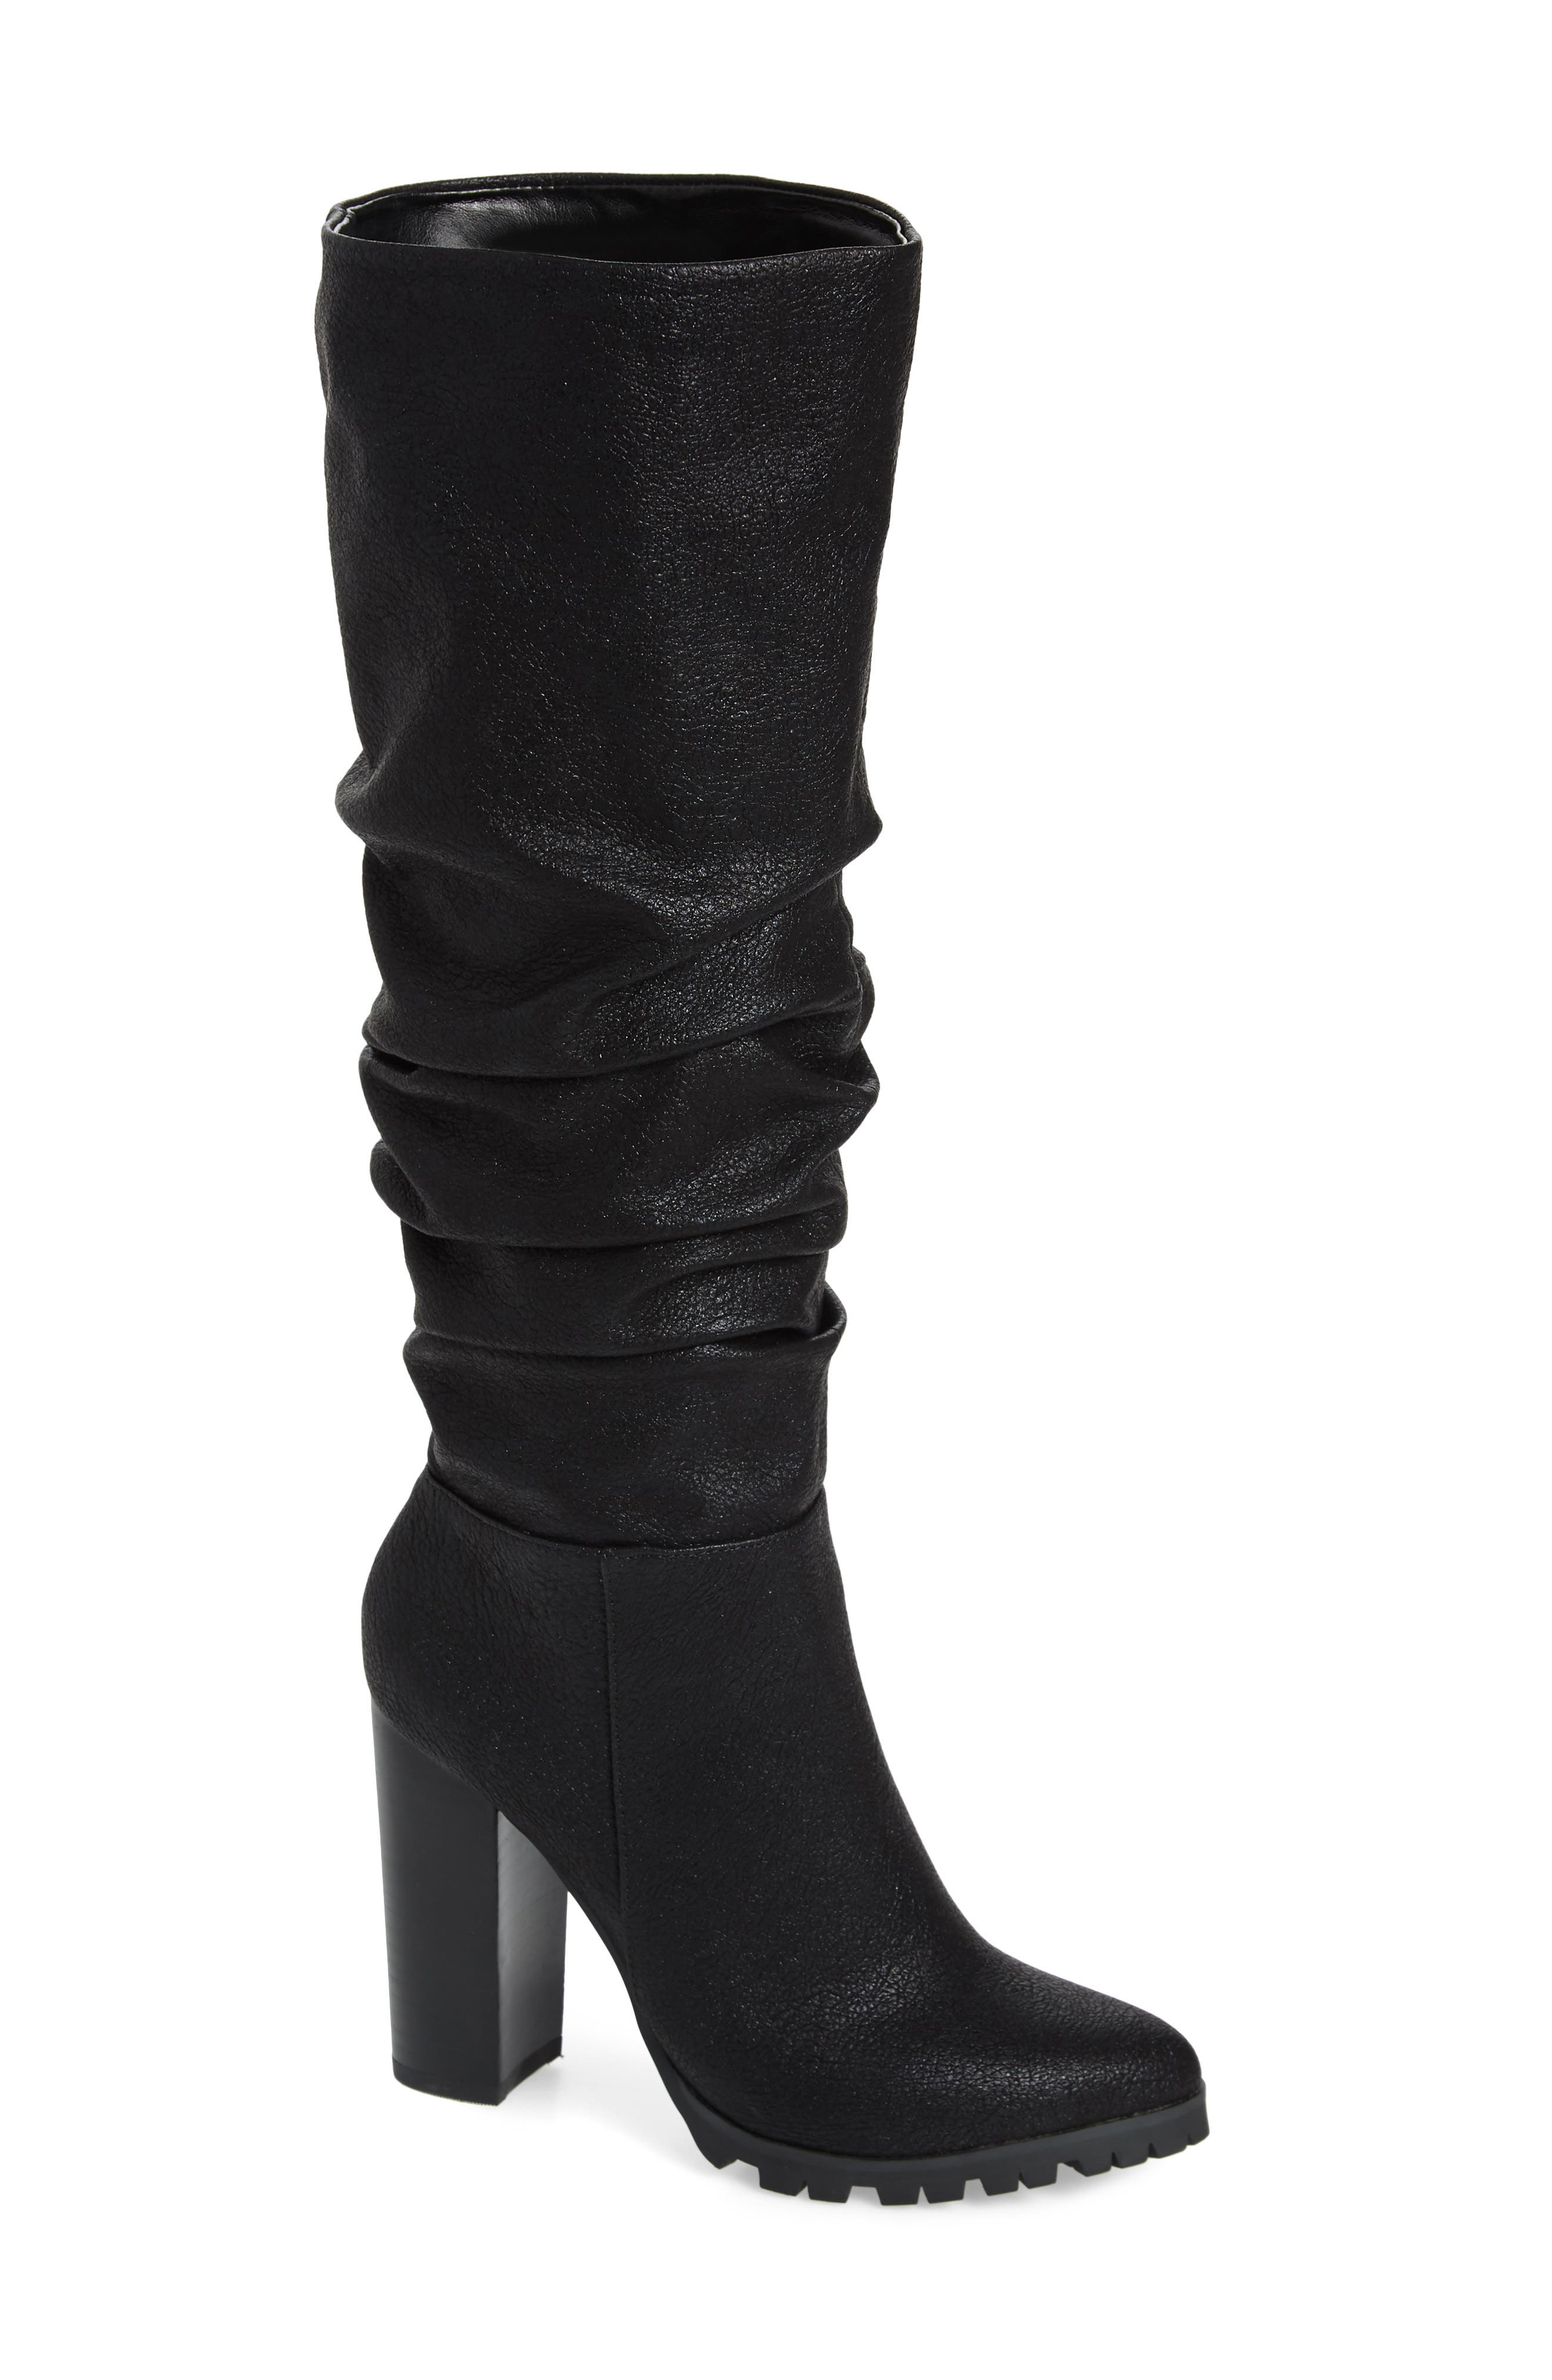 Katy Perry Knee High Boot, Black